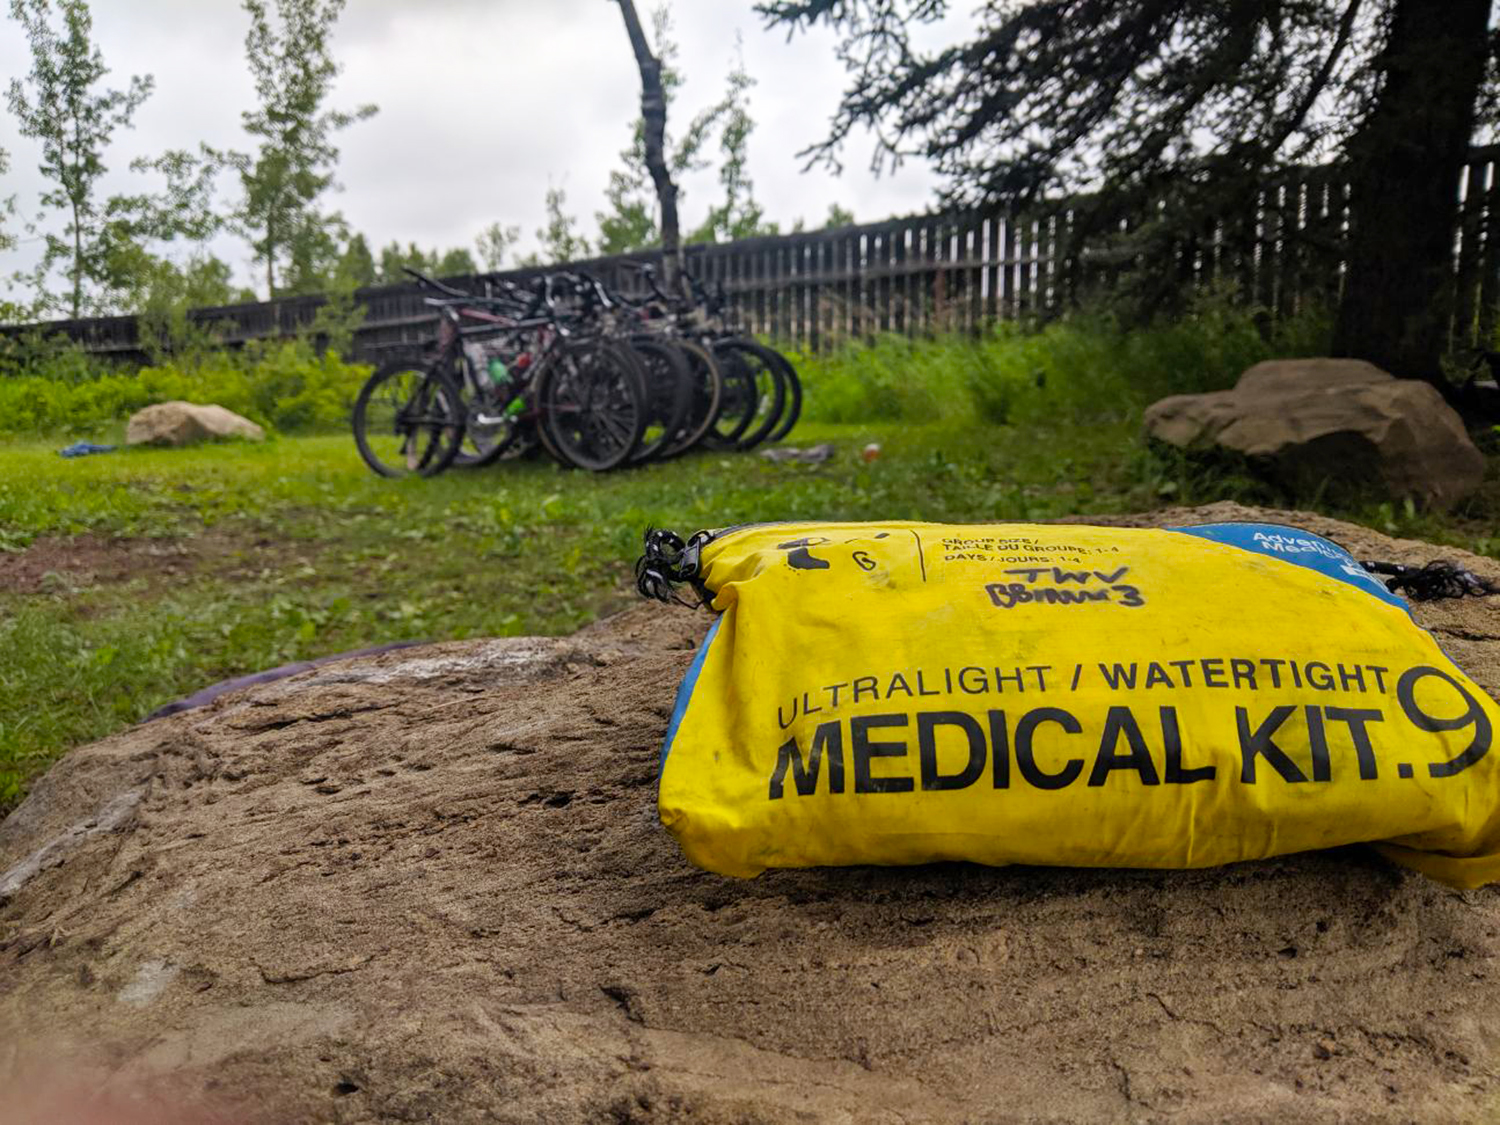 Displayed is Adventure Medical Kits Ultralight/Watertight .9 Medical Kit provided to Trips for Kids chapters. This is one of two kits the chapters receive.  Photo courtesy of Trips for Kids Calgary (Canada) sponsored by Two Wheel View.